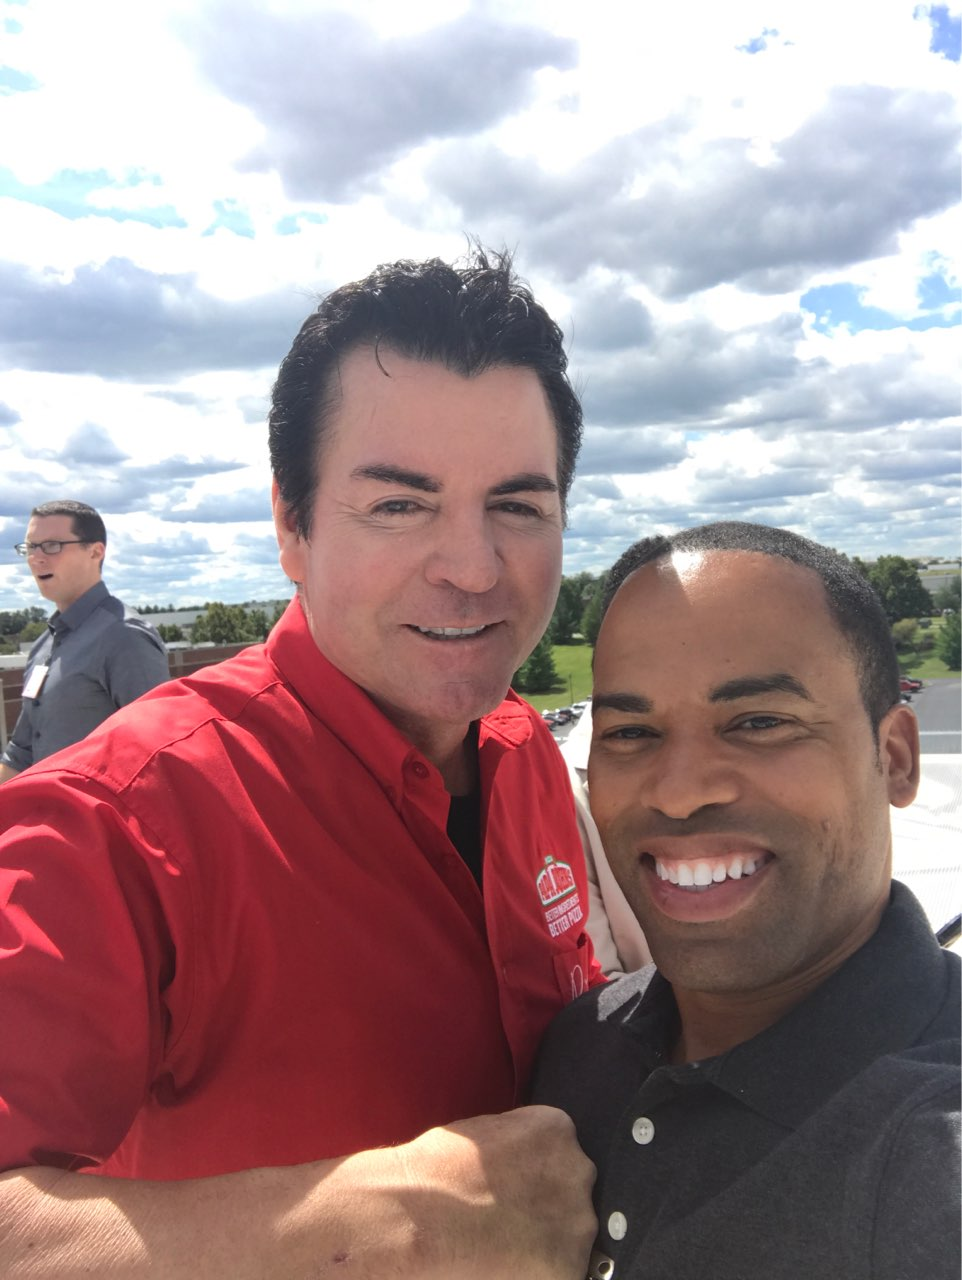 Hanging Out With John Schnatter Aka Papa John  F0 9f 8d 95 On His Helipad He Advised Me Find Out What Everyone Else Is Doing And You Do The Opposite Success Is